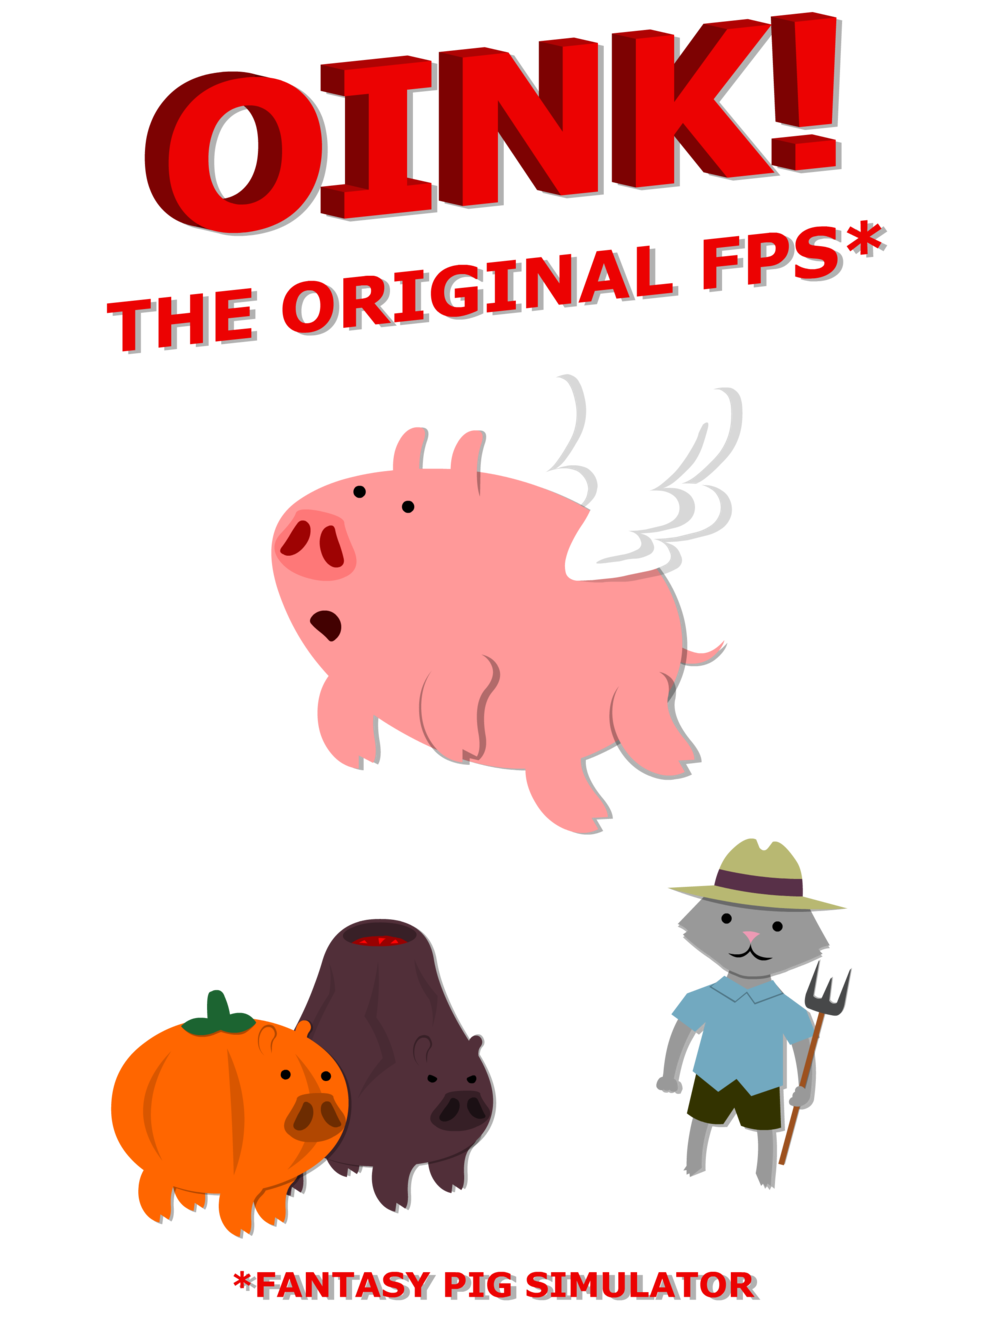 Oink! shirt design2.png